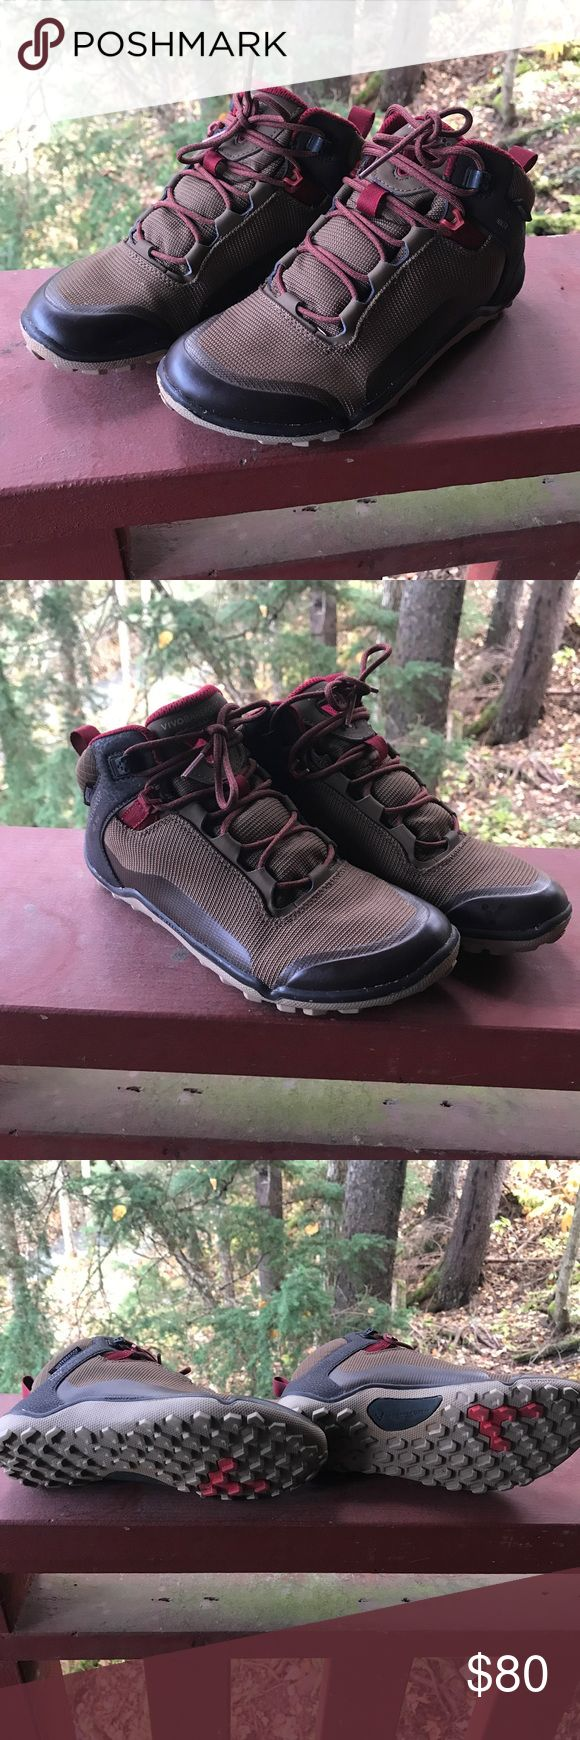 Vivobarefoot Hikers Minimalist style high top hiking boot.  I only wore these a few times, but they're just too small for me.  Definitely for a true size 6 or even 5.5. Vivo barefoot Shoes Athletic Shoes